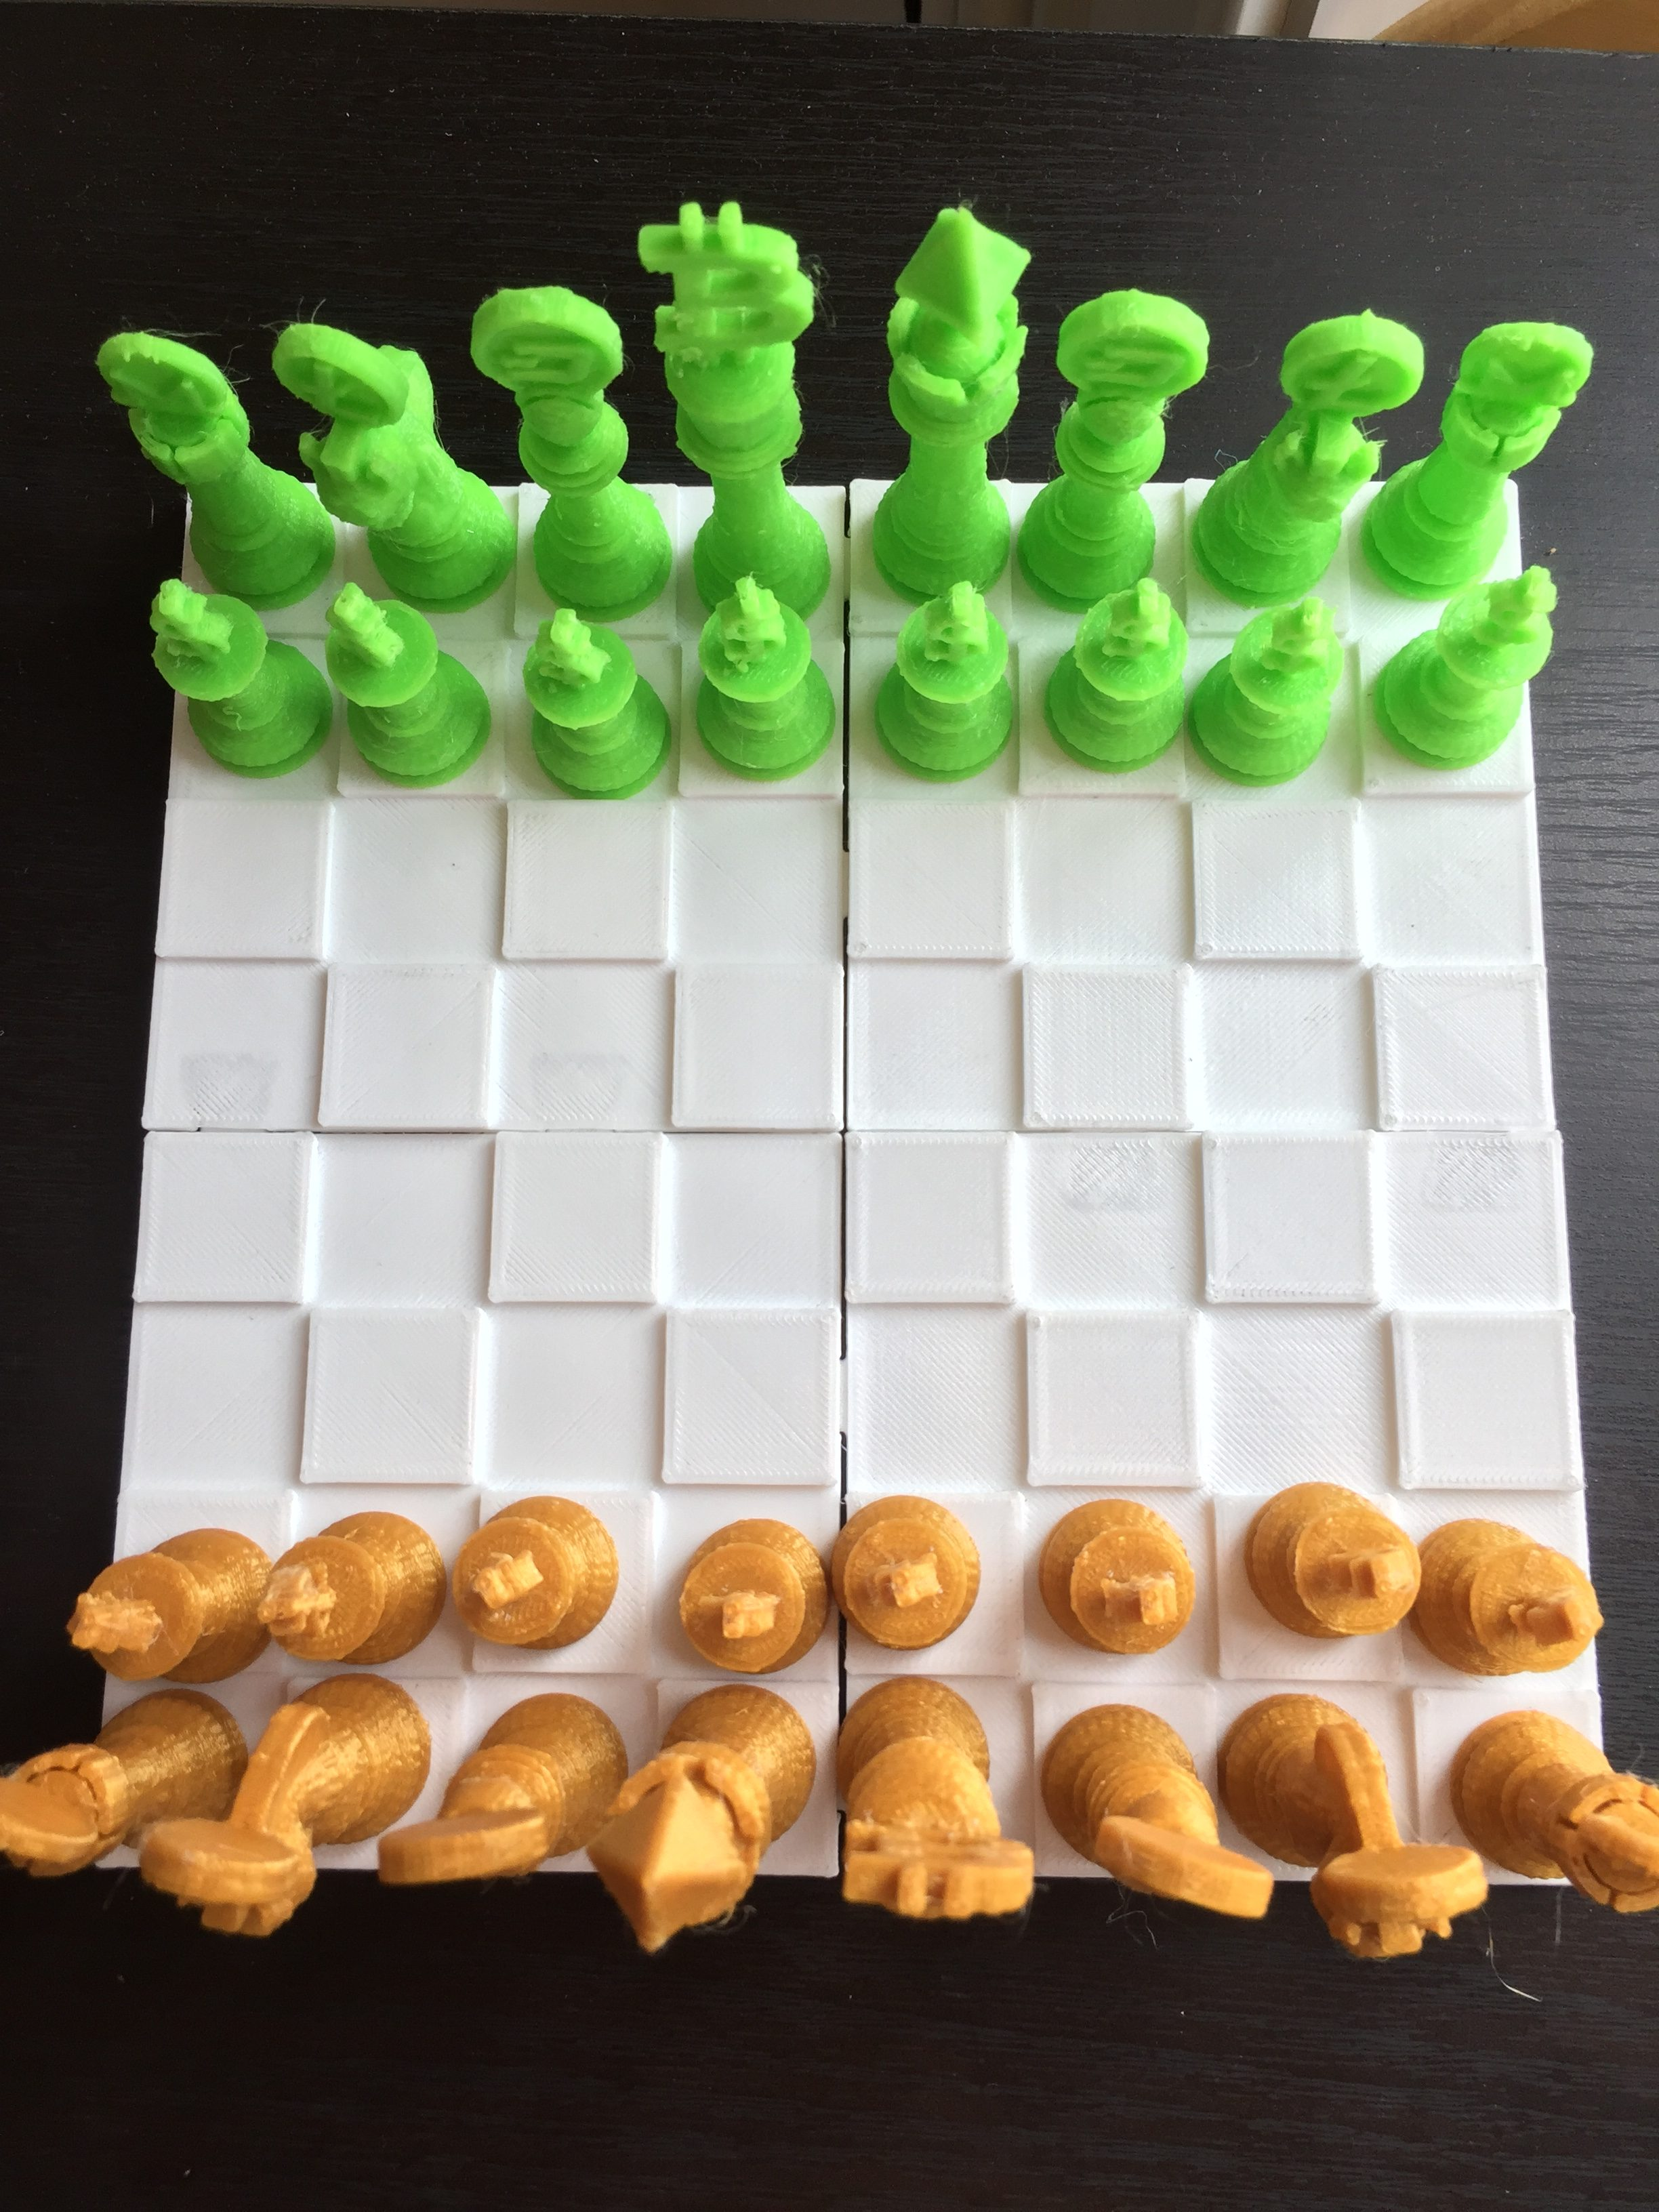 New Item: 3D Printed Chess Set